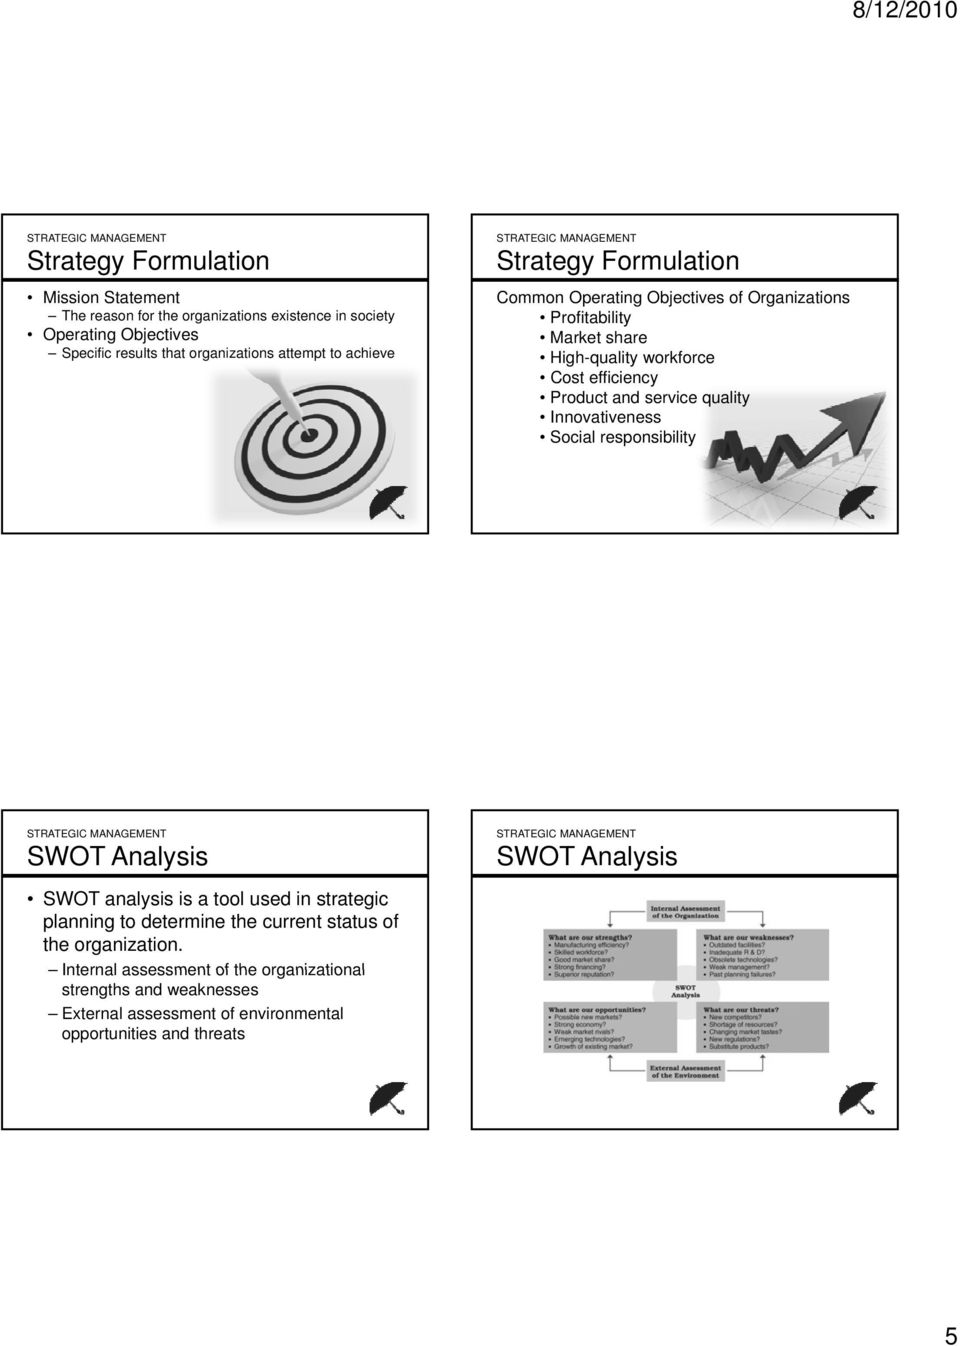 service quality Innovativeness Social responsibility SWOT Analysis SWOT Analysis SWOT analysis is a tool used in strategic planning to determine the current